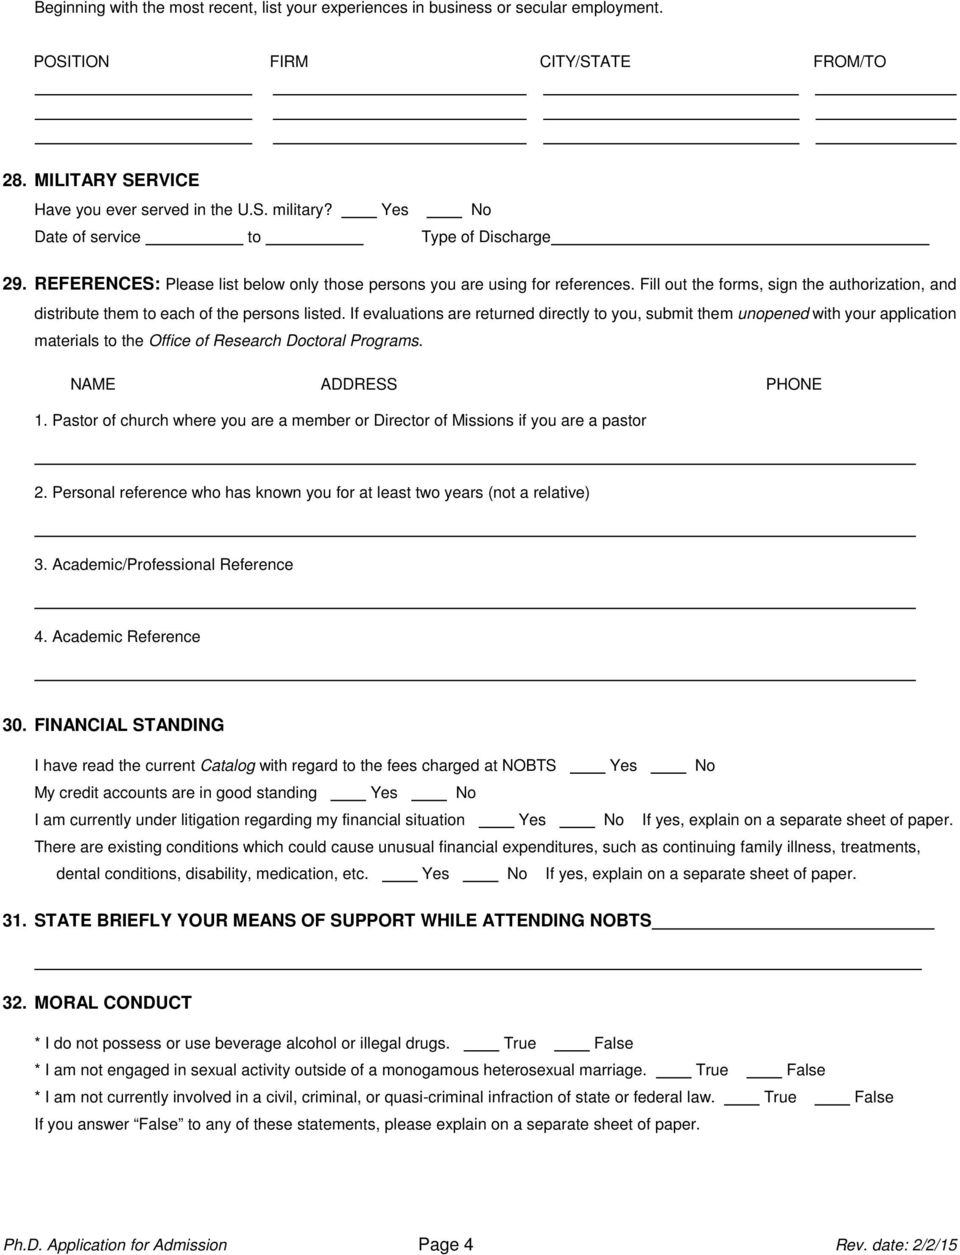 Fill out the forms, sign the authorization, and distribute them to each of the persons listed.